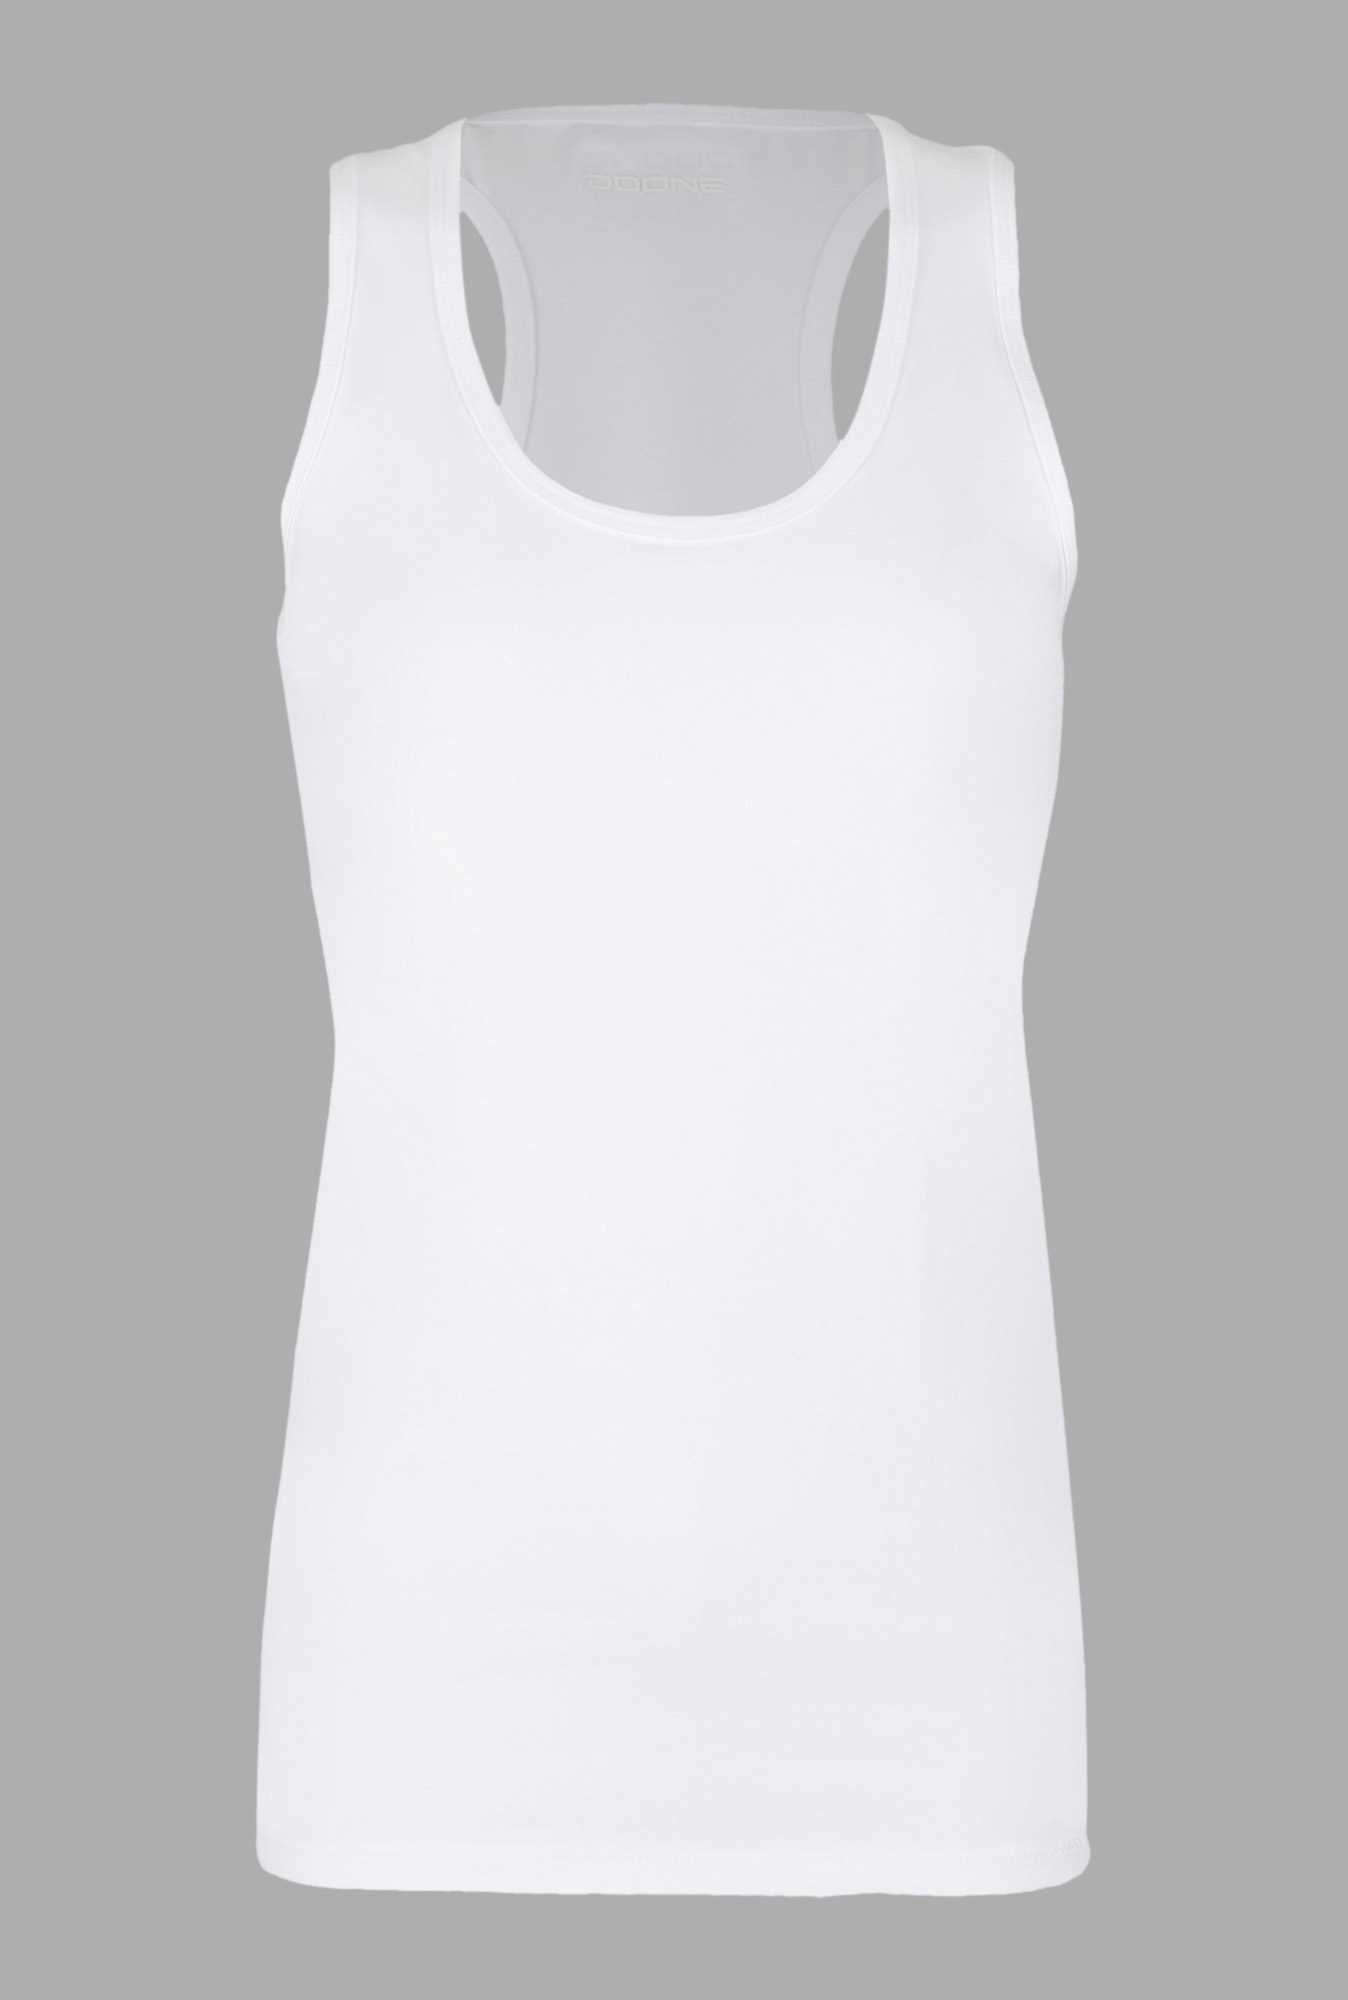 Doone White Slim Fit Training Singlet